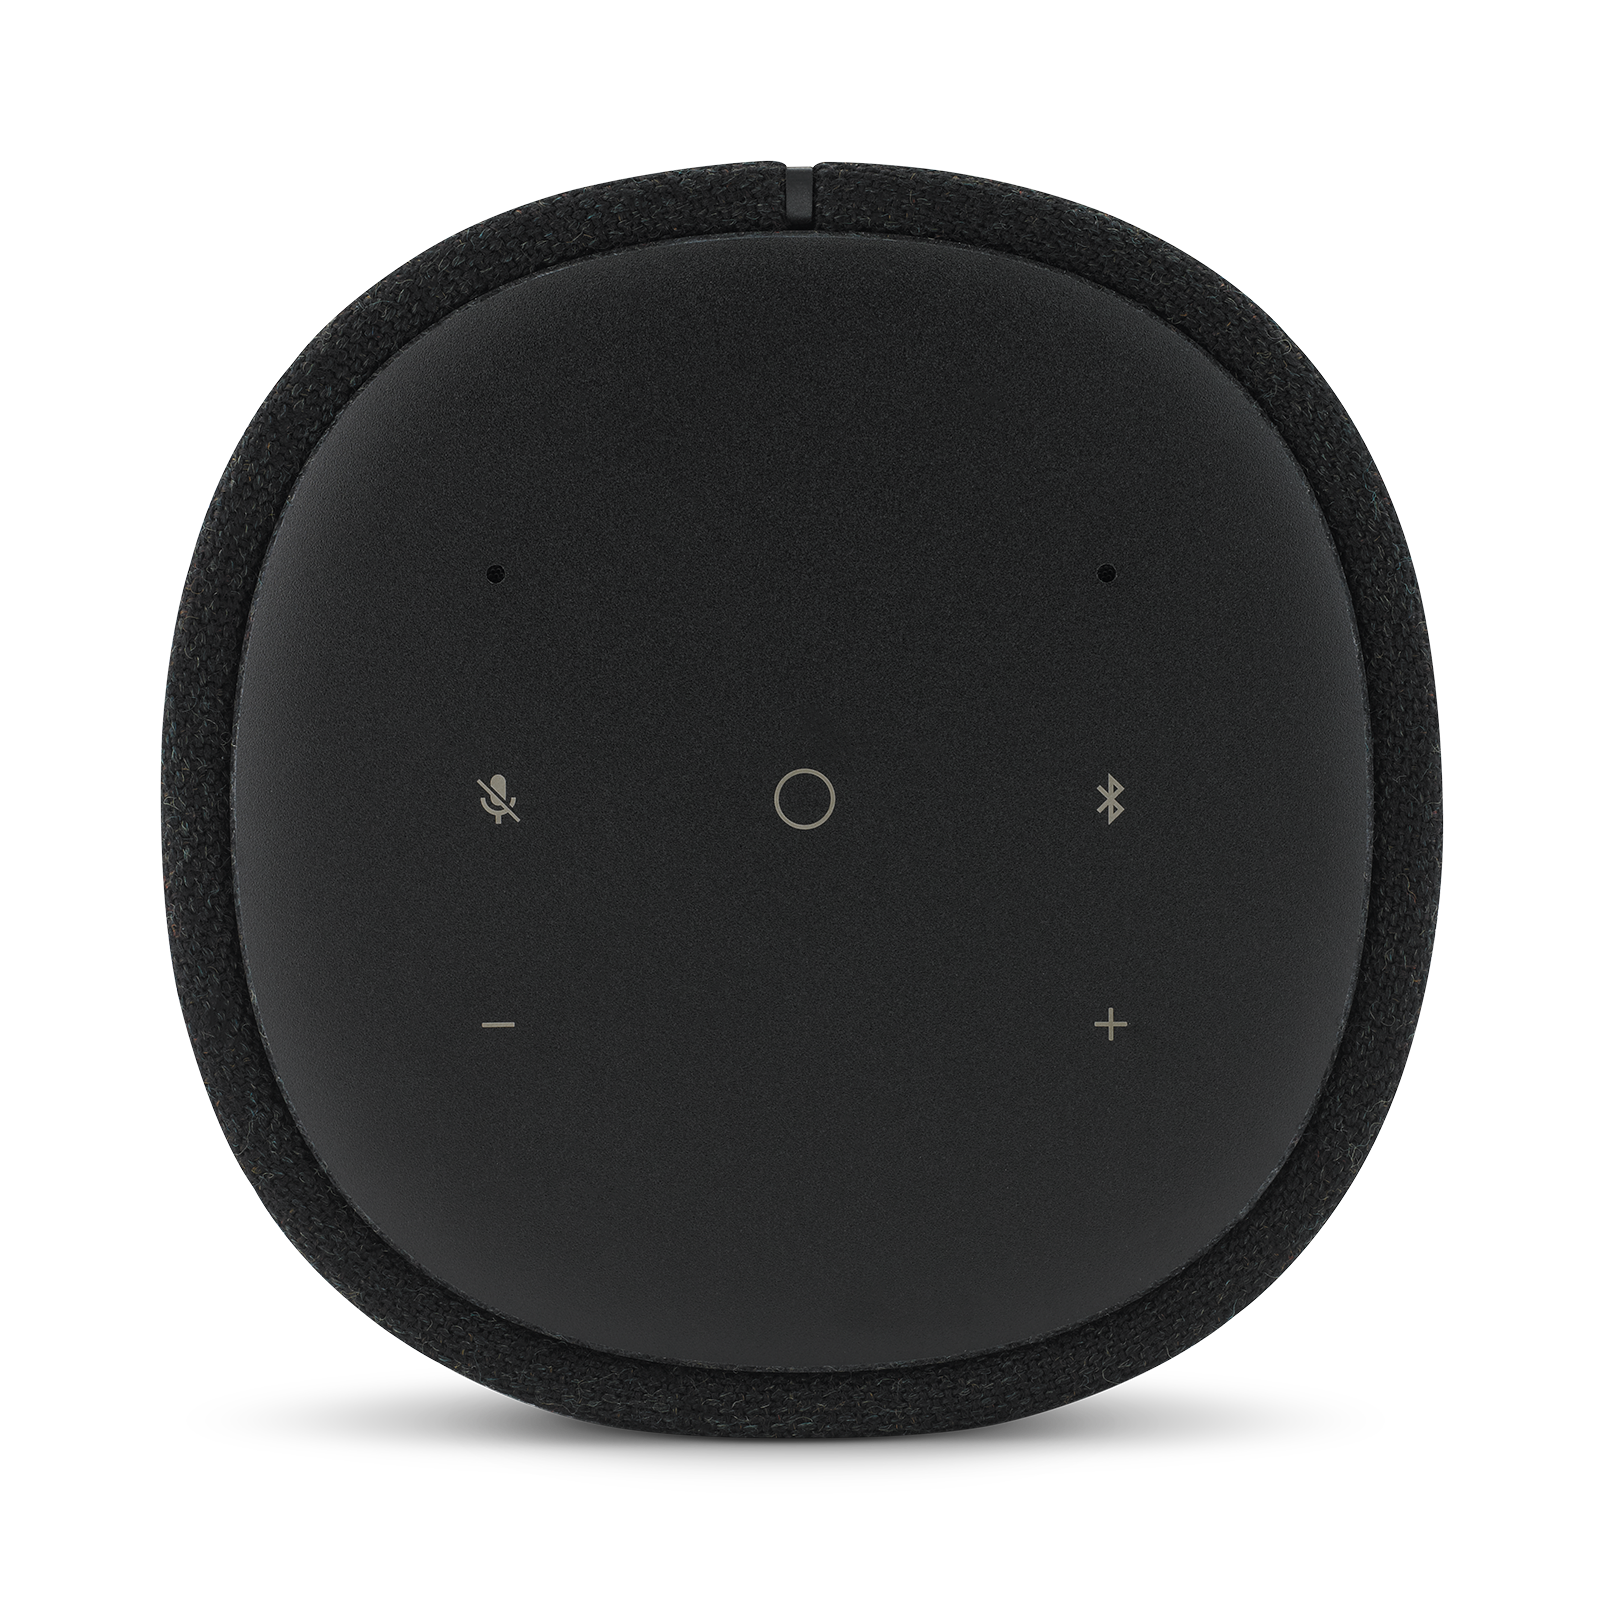 Harman Kardon Citation ONE - Black - Compact, smart and amazing sound - Detailshot 3